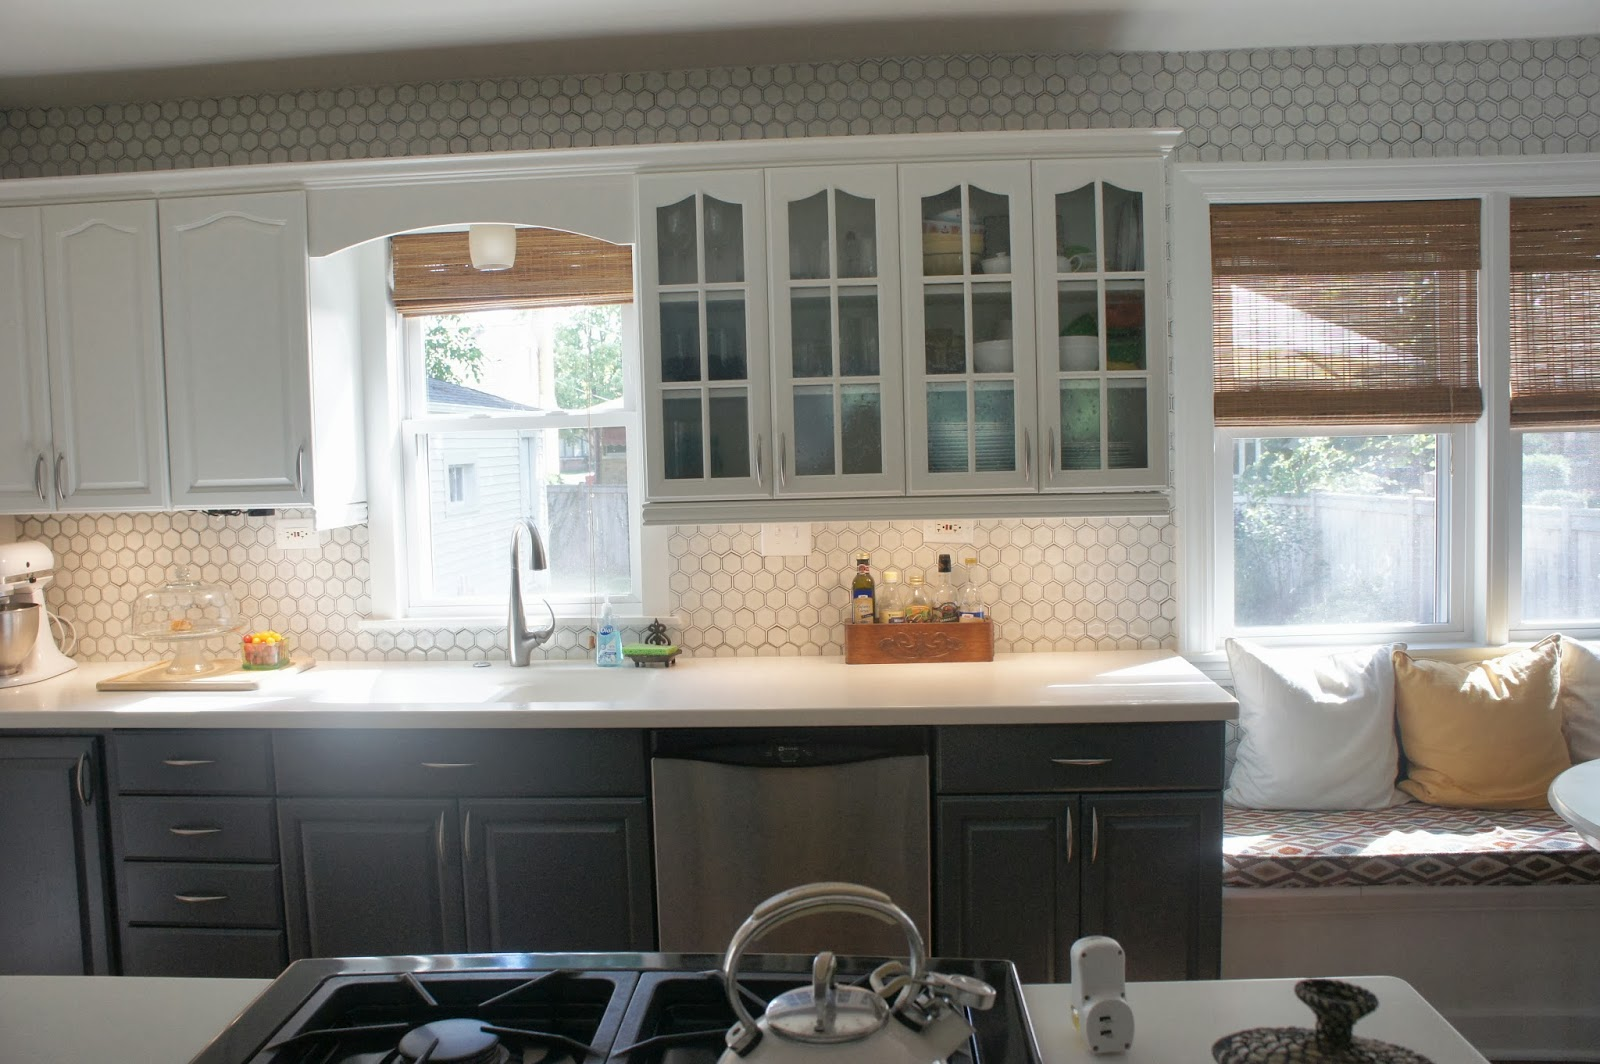 White subway tile backsplash. interior modern minimalist bathroom ...